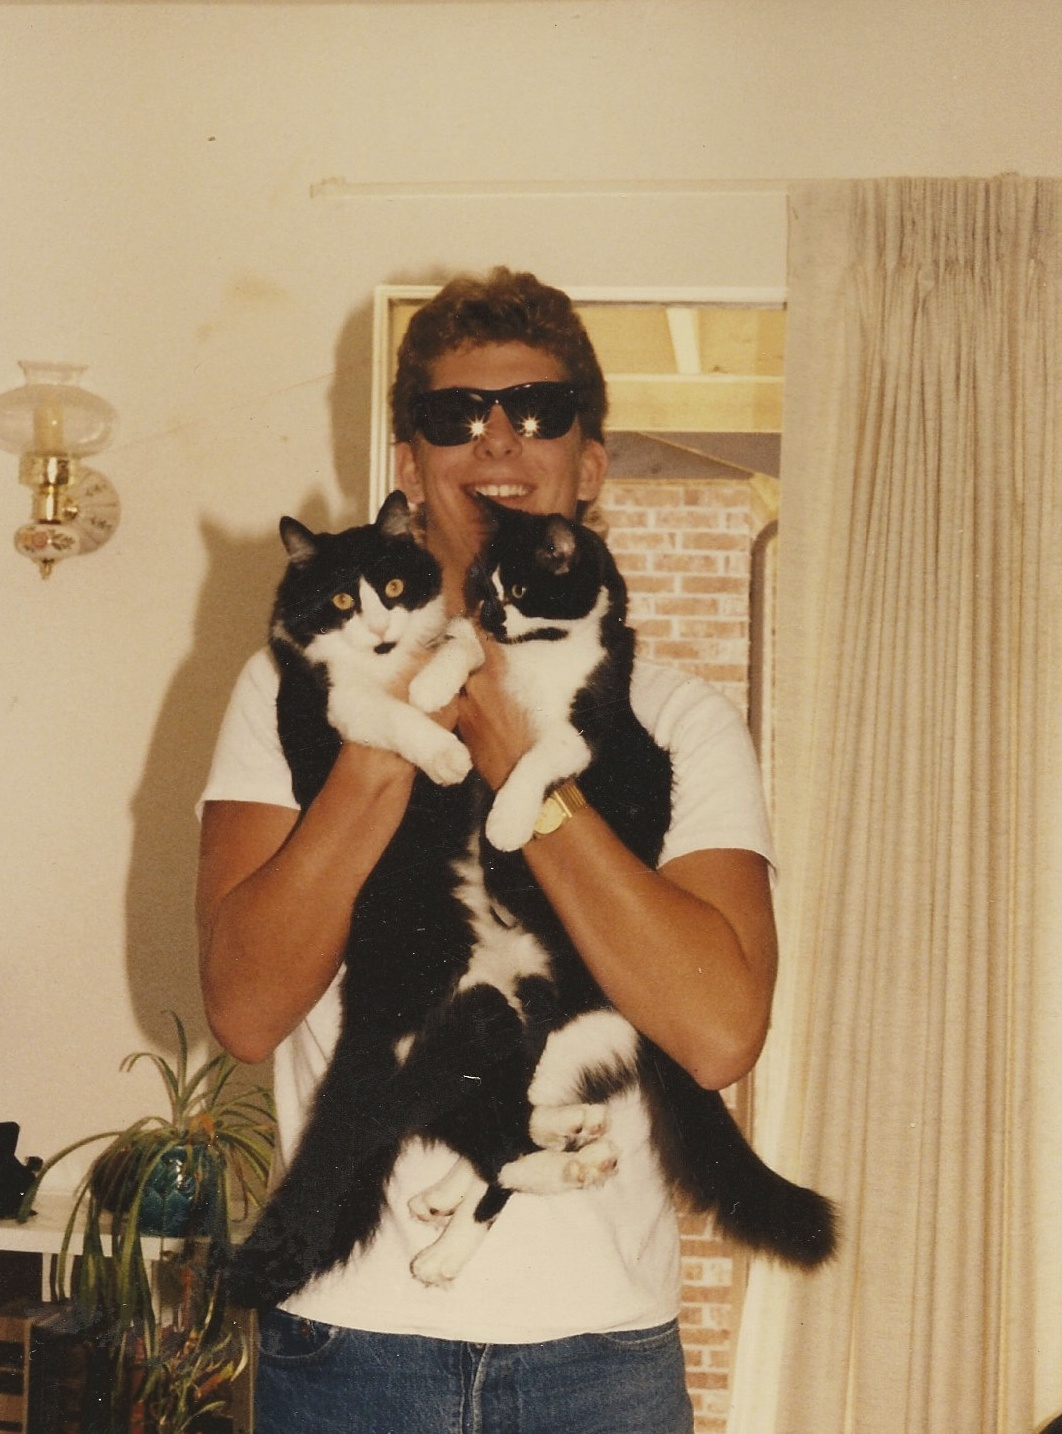 We always had cats to love on. Here Steve is enjoying my cats Festus and Miss Kitty in one of my first apartments